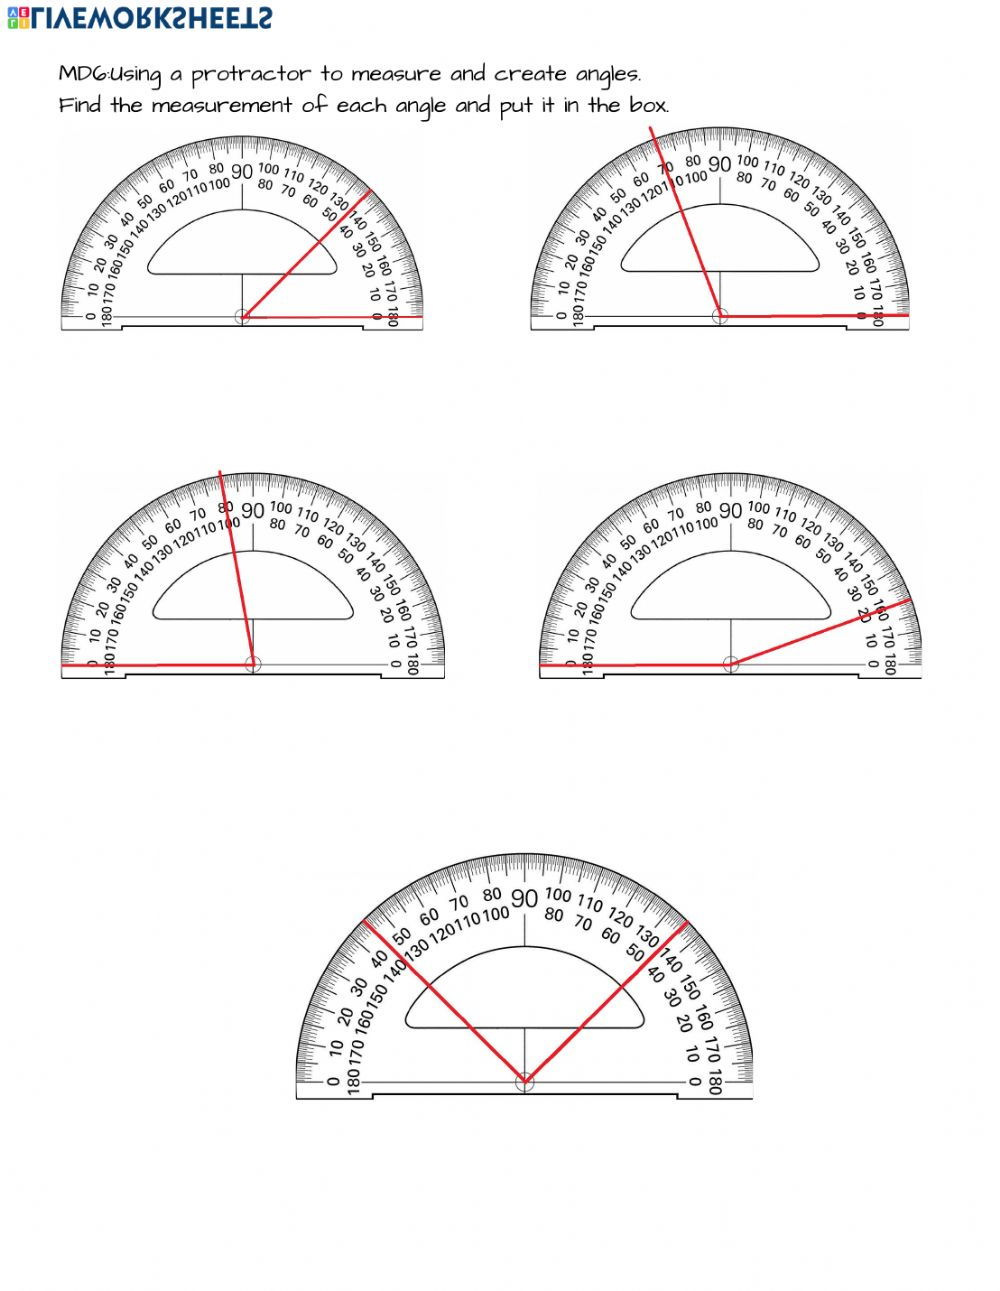 4 Md 6 Measuring Angles With A Protractor Worksheet